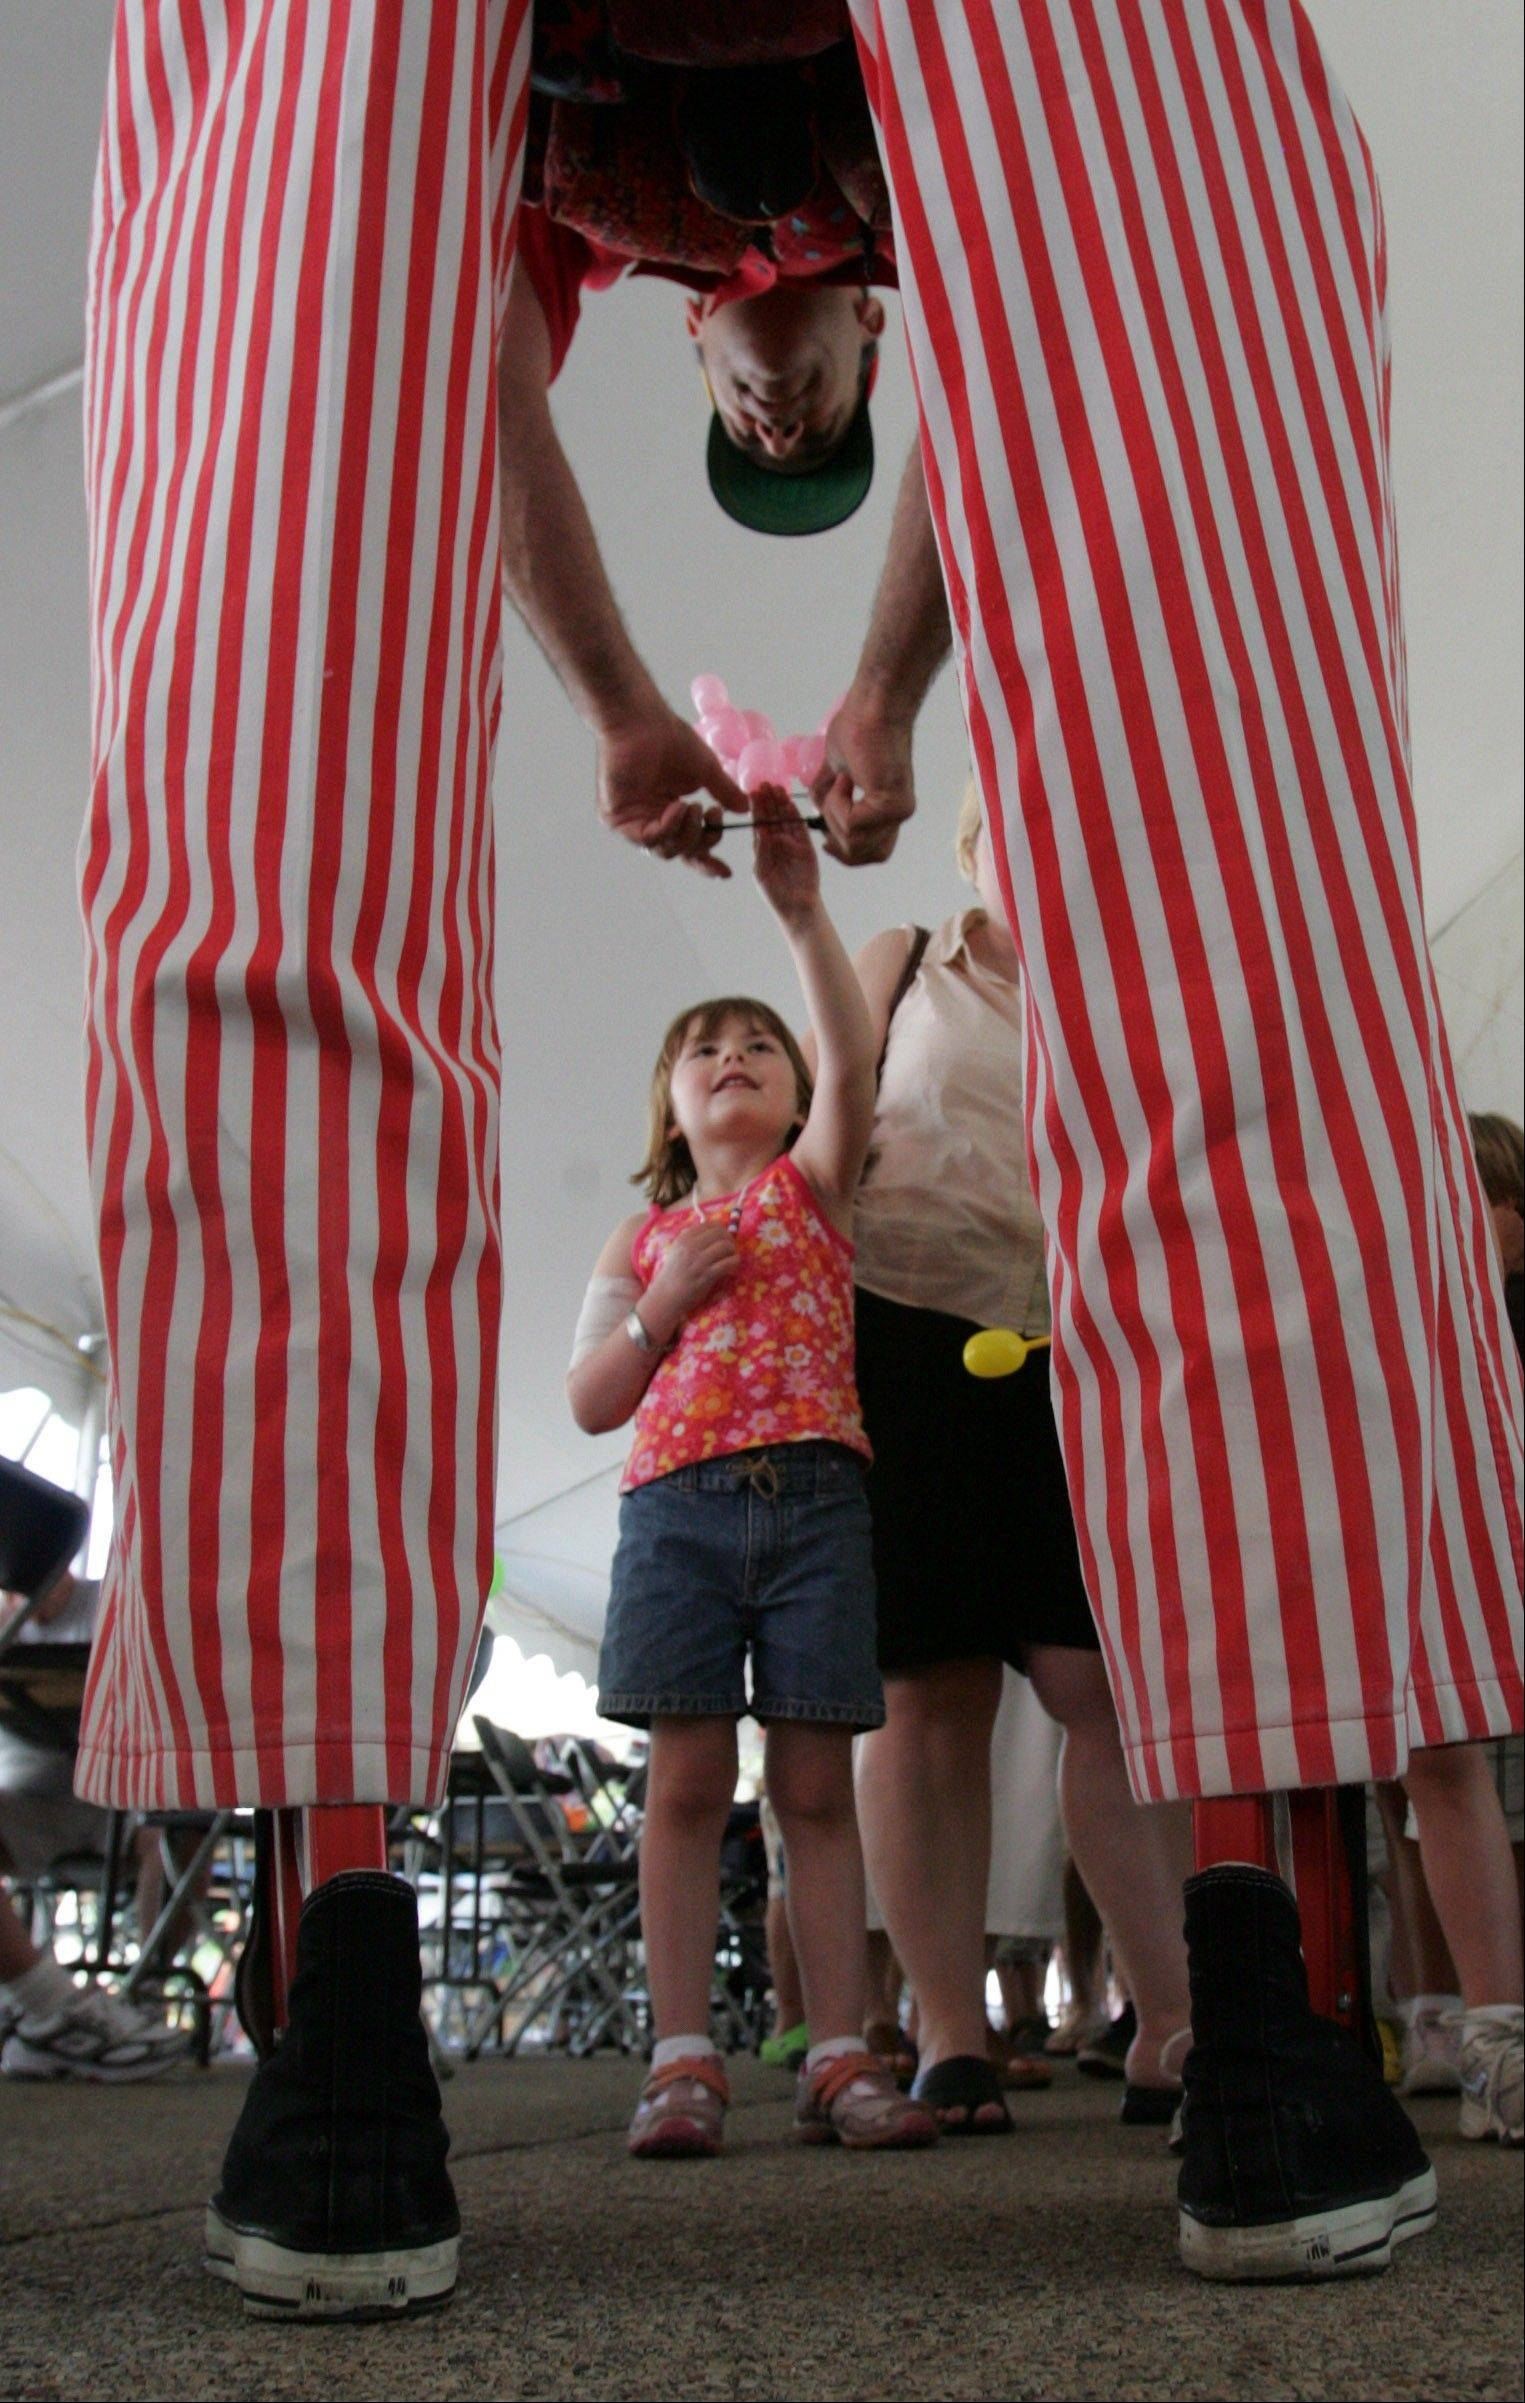 Frank Birdsall, who returns to the Barrington festival this year, gives a child a balloon at a recent year's fest.